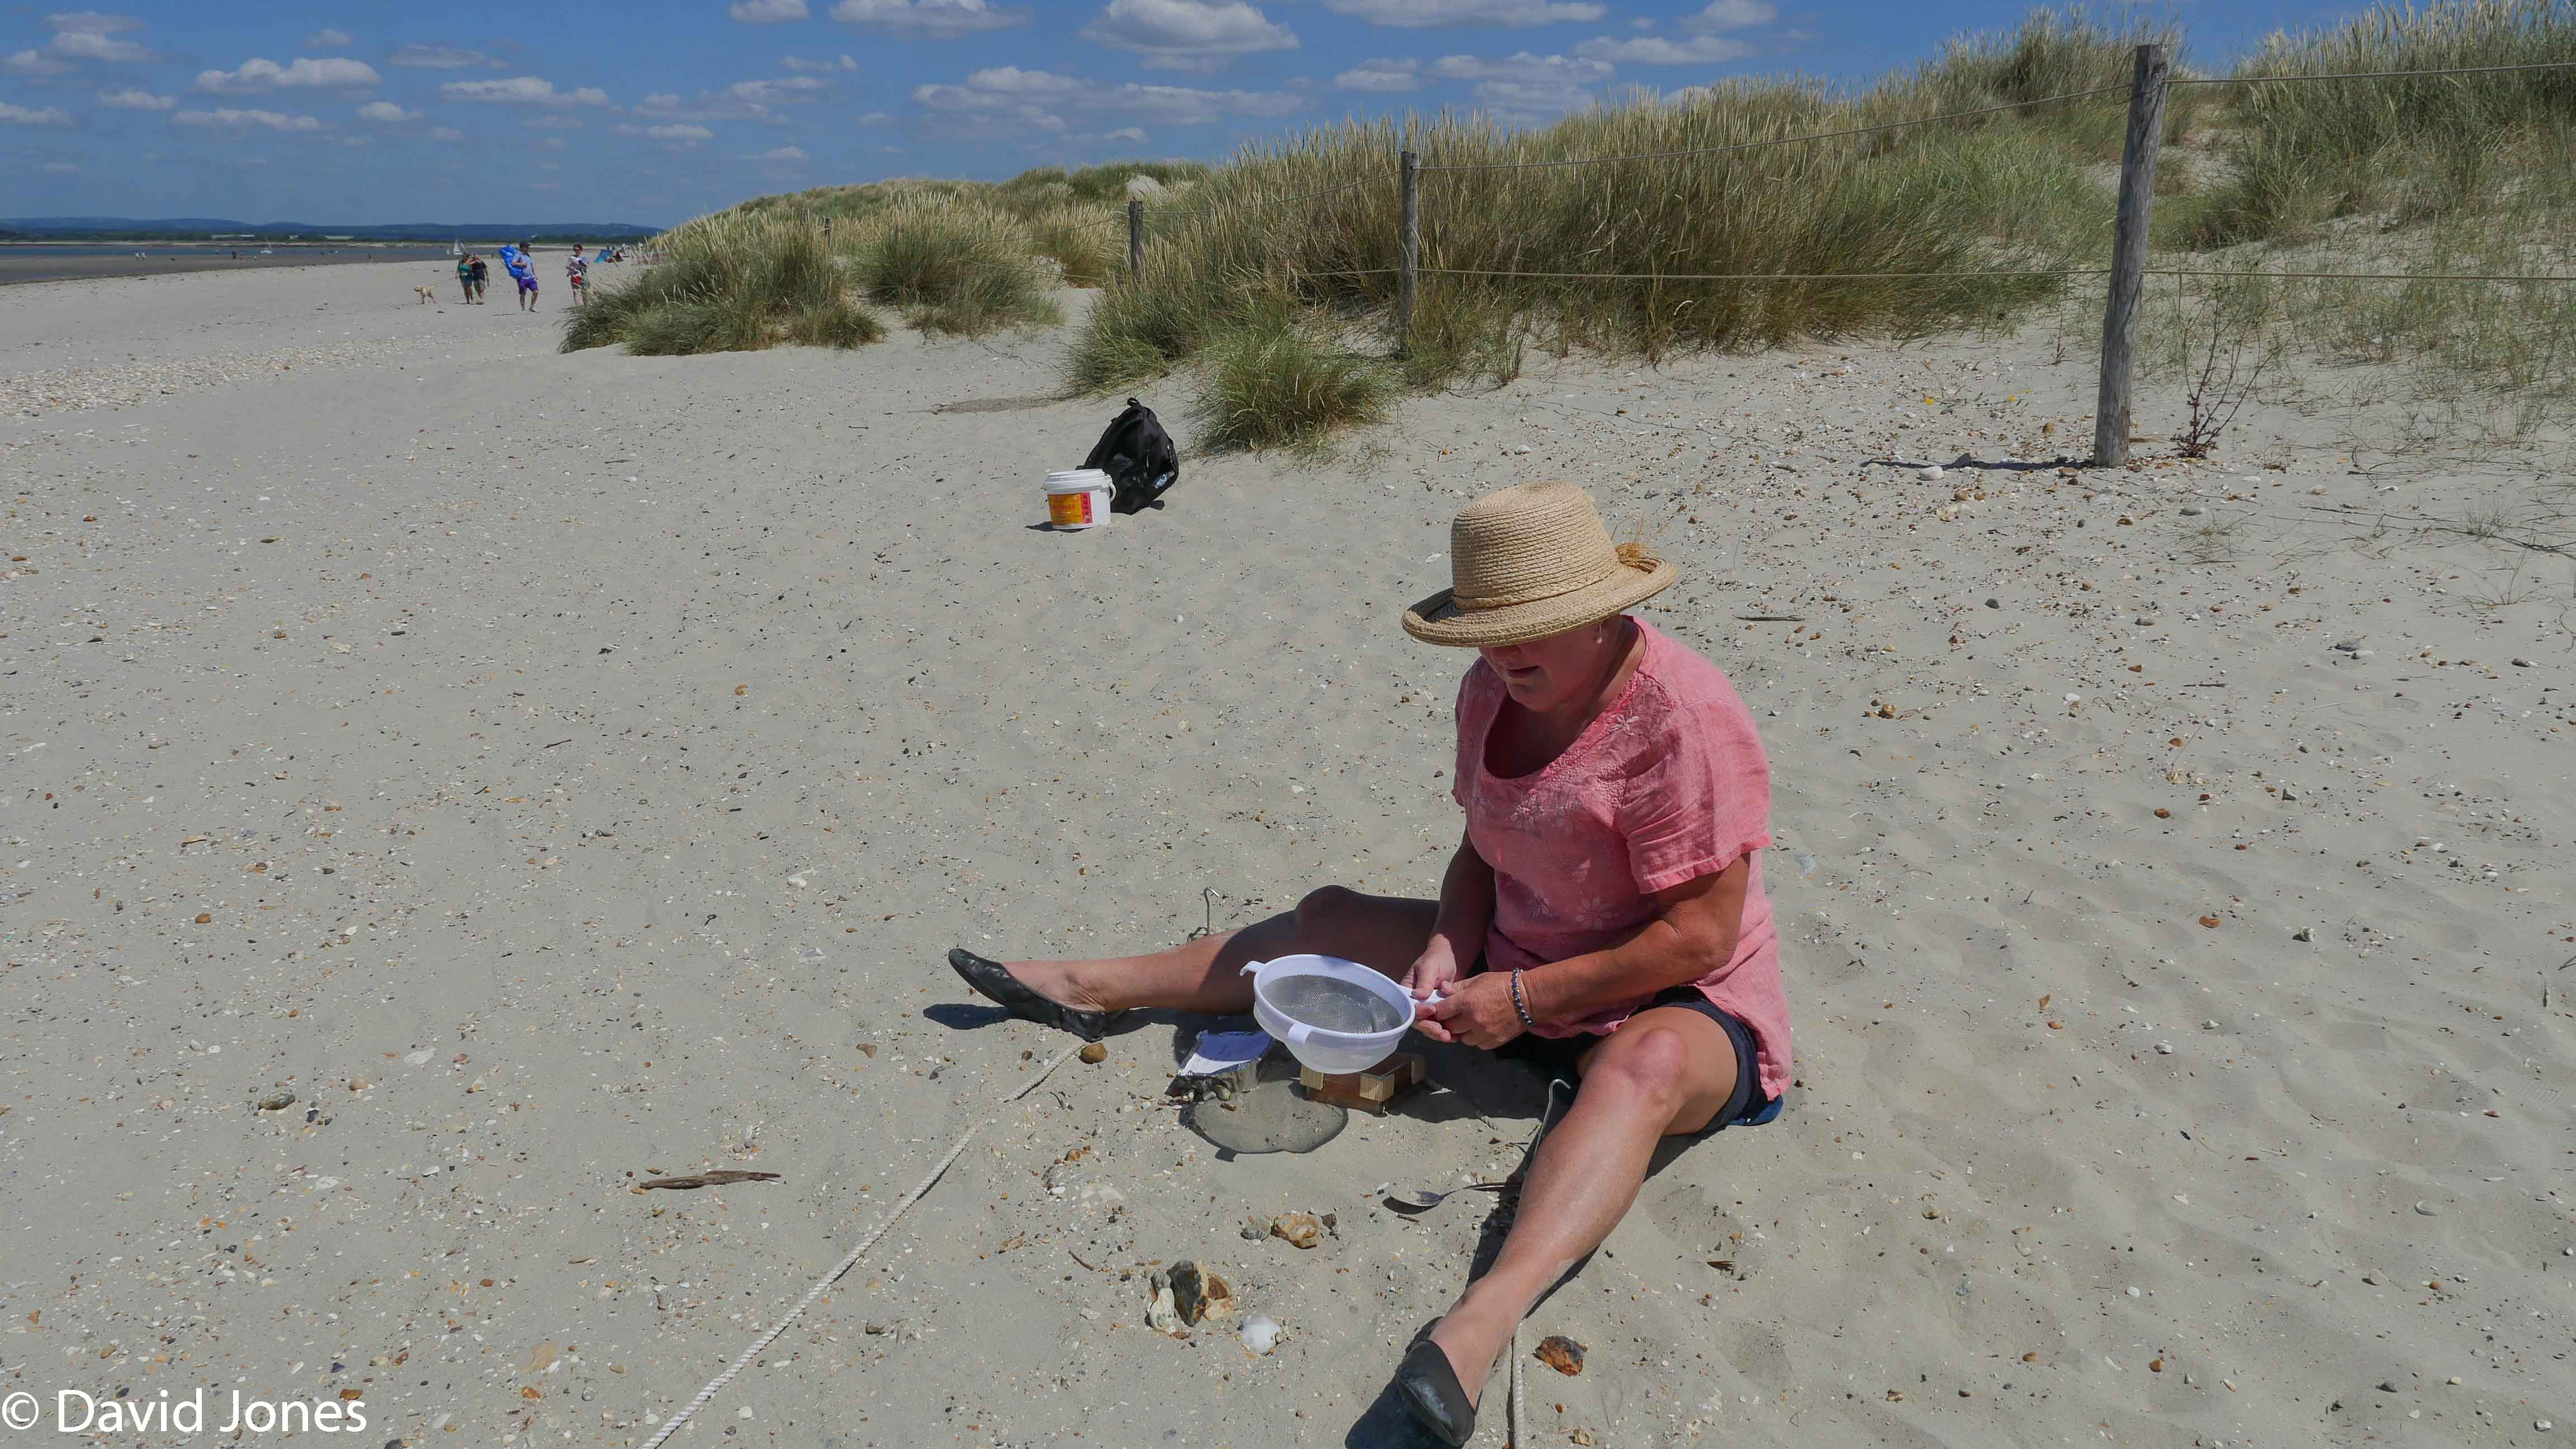 undertaking a survey on the beach with a sieve